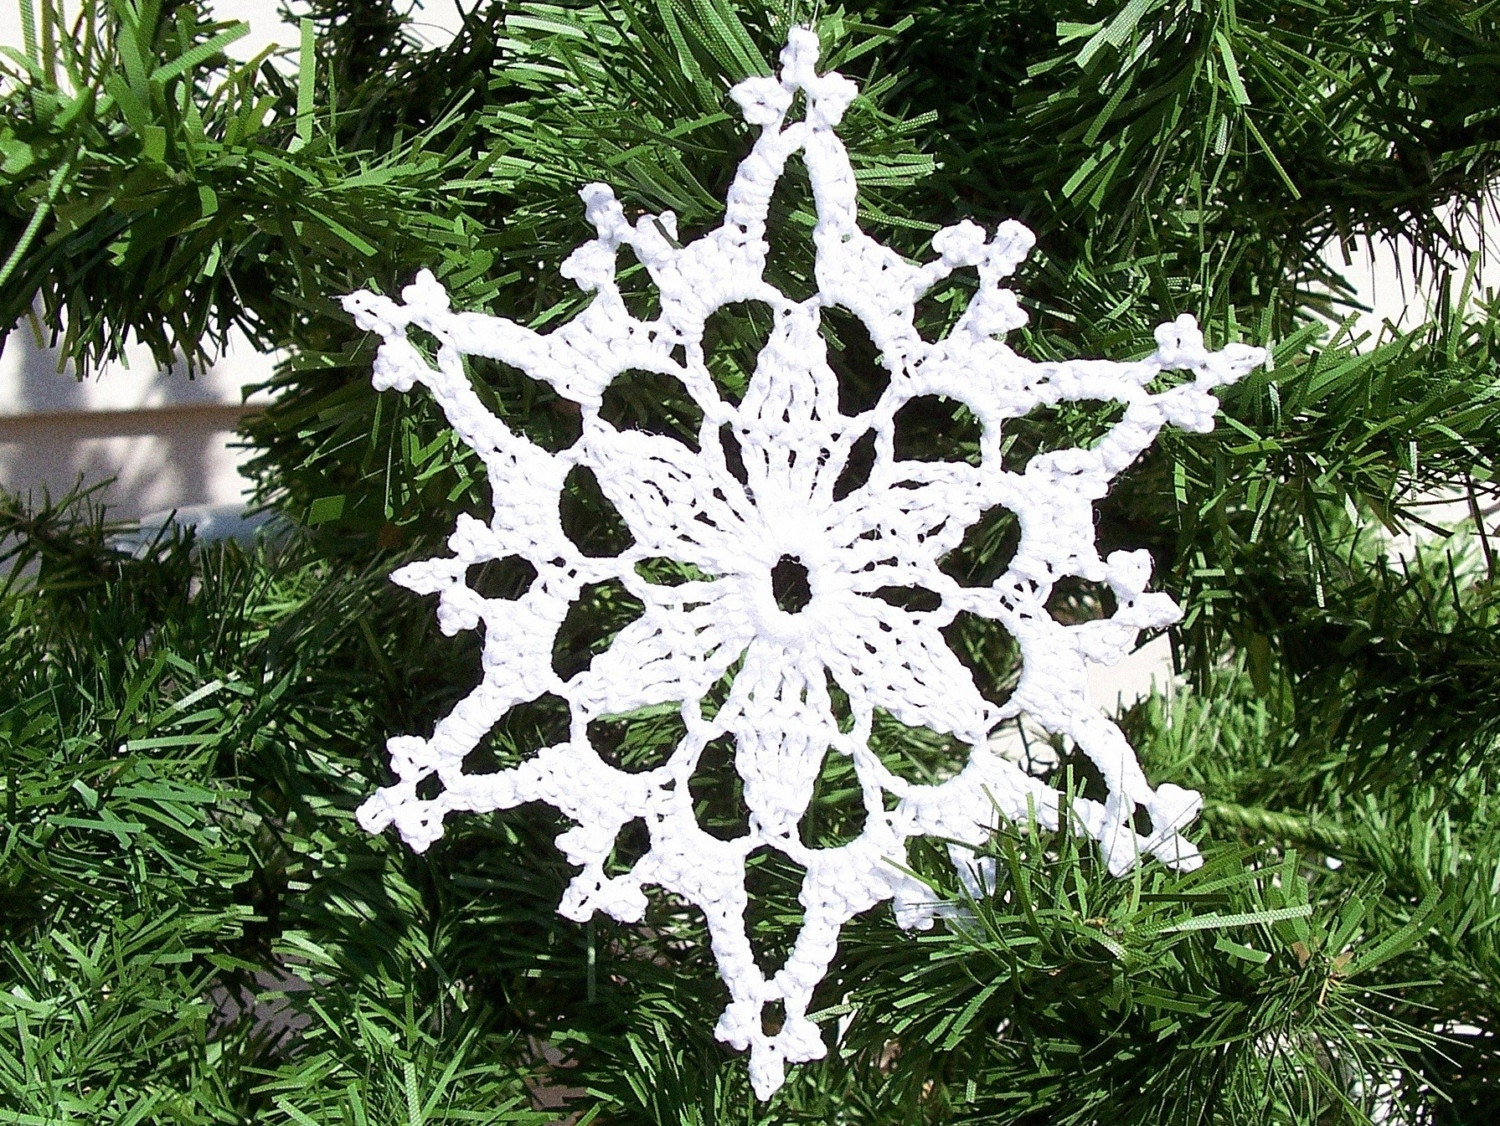 Crocheted Snowflake Patterns Crochet For Beginners